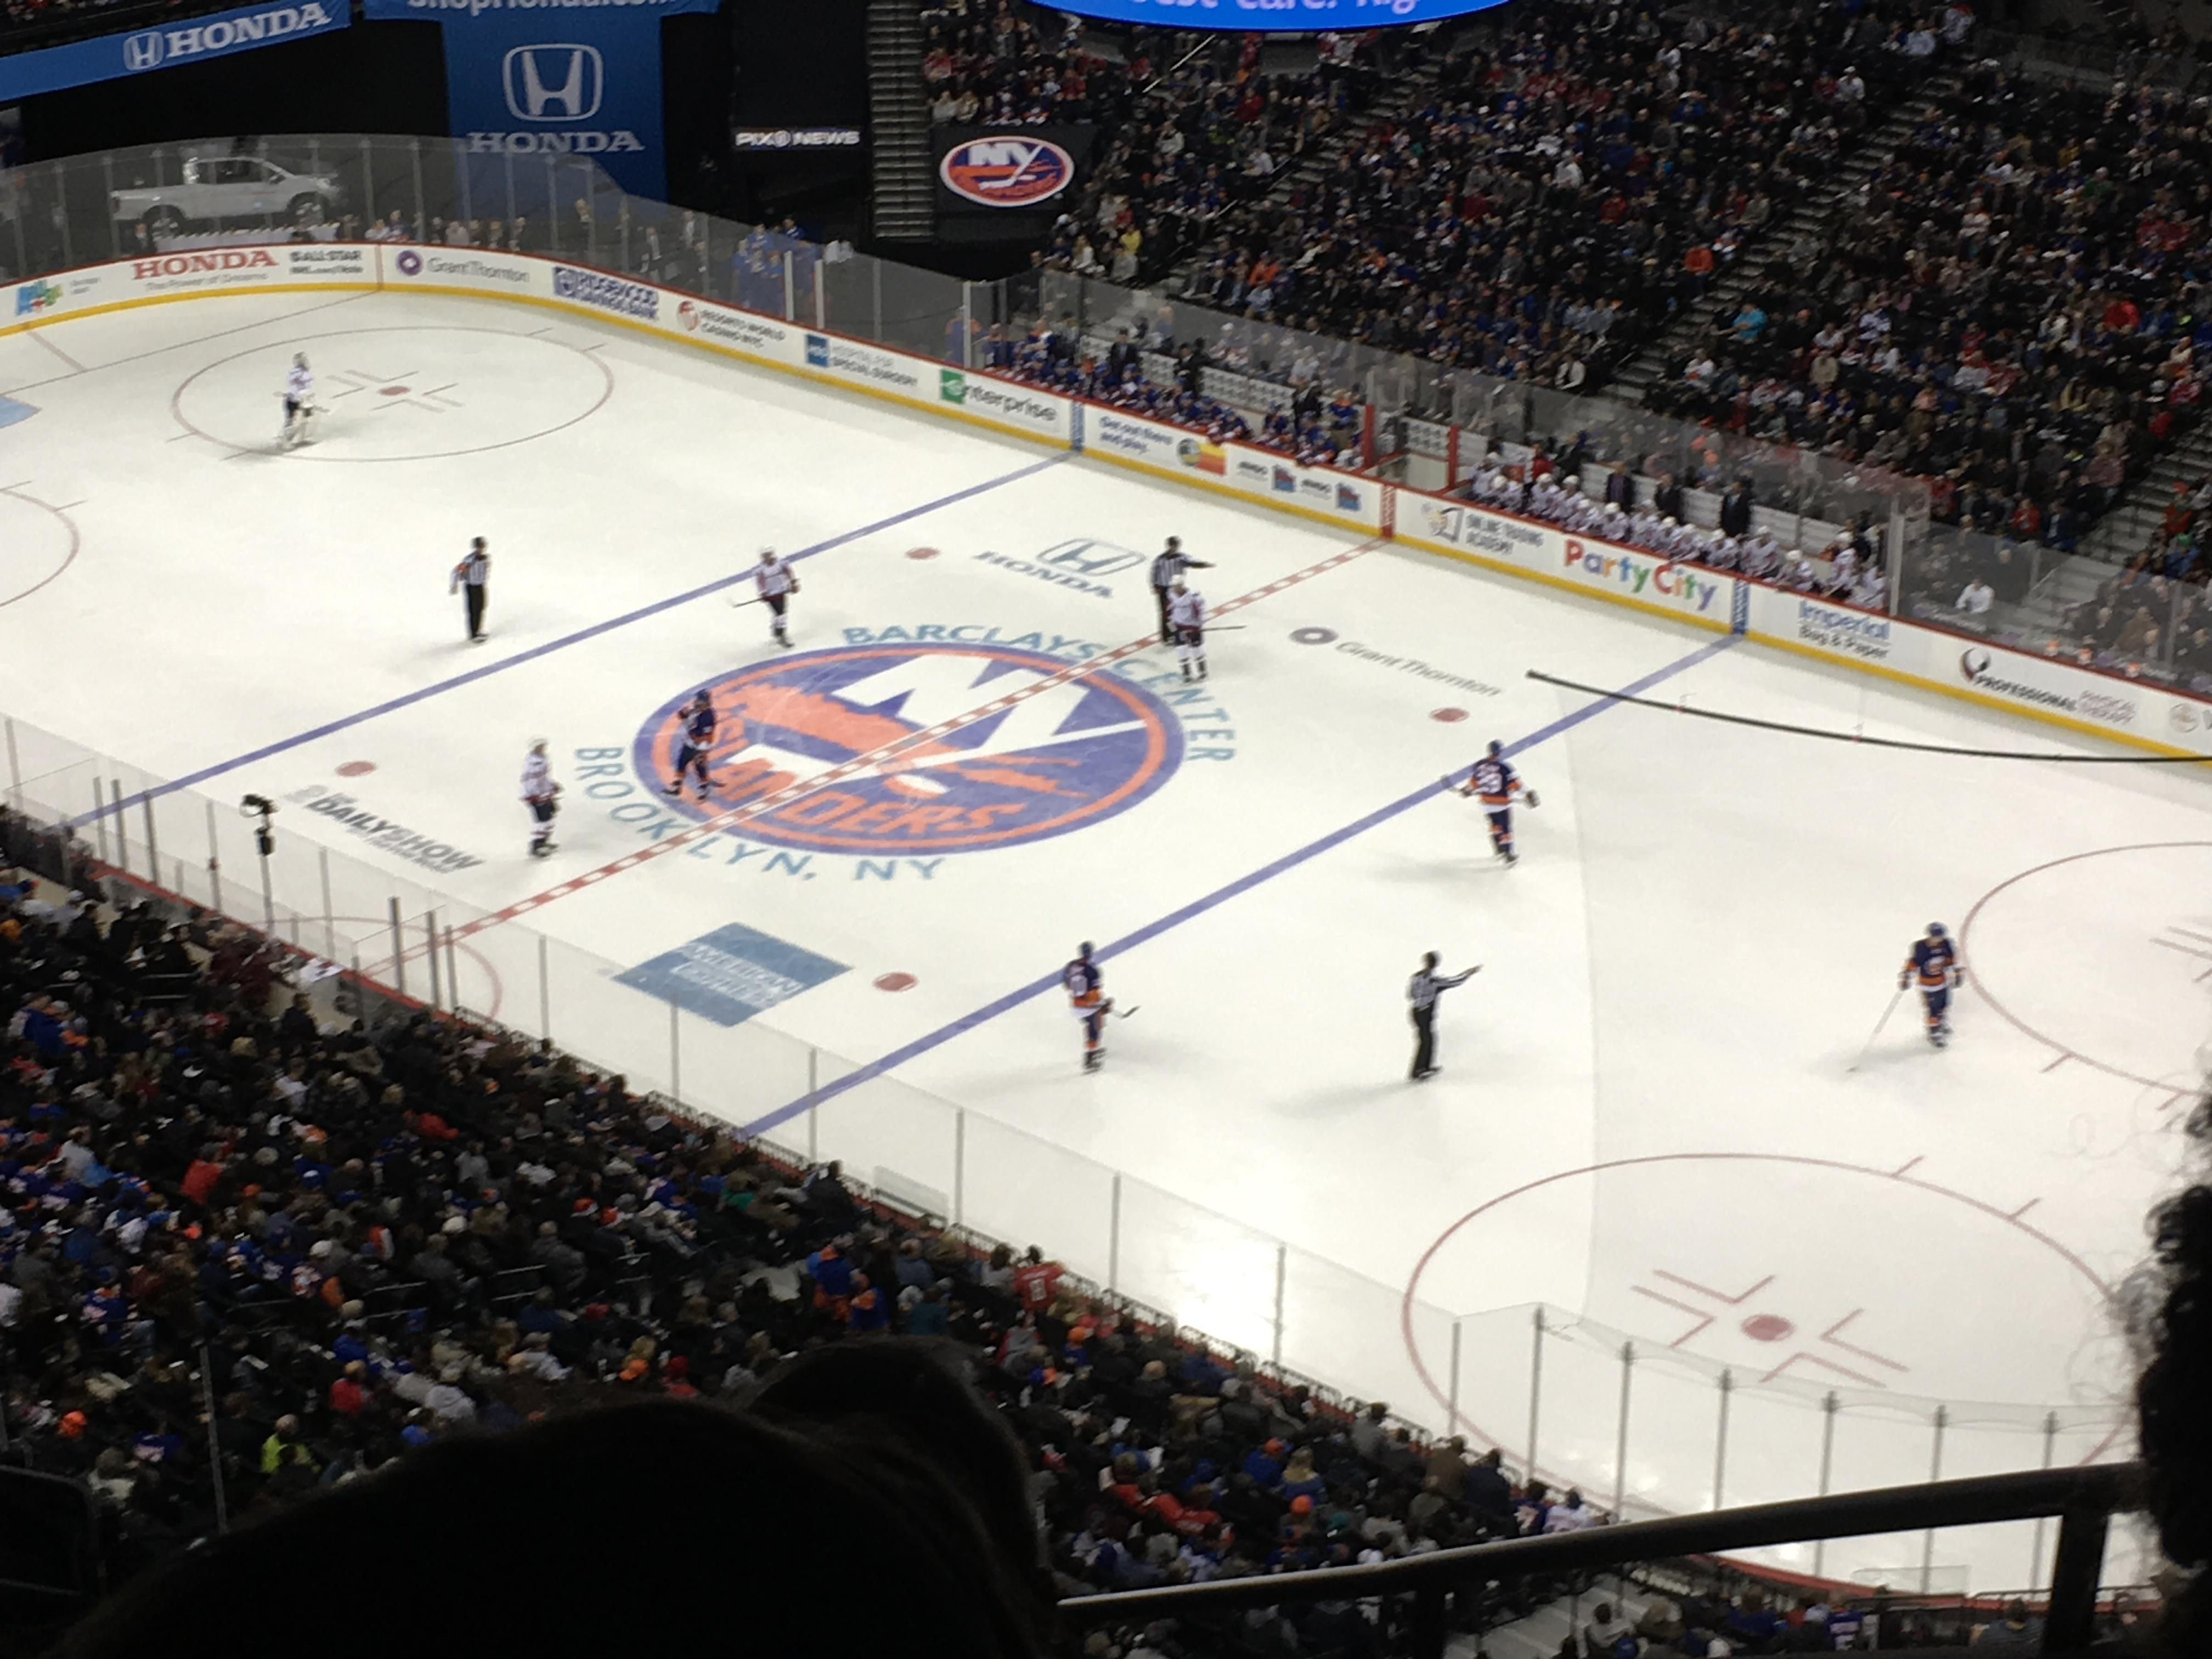 Barclays Center Section 221 Row 12 Seat 1-7